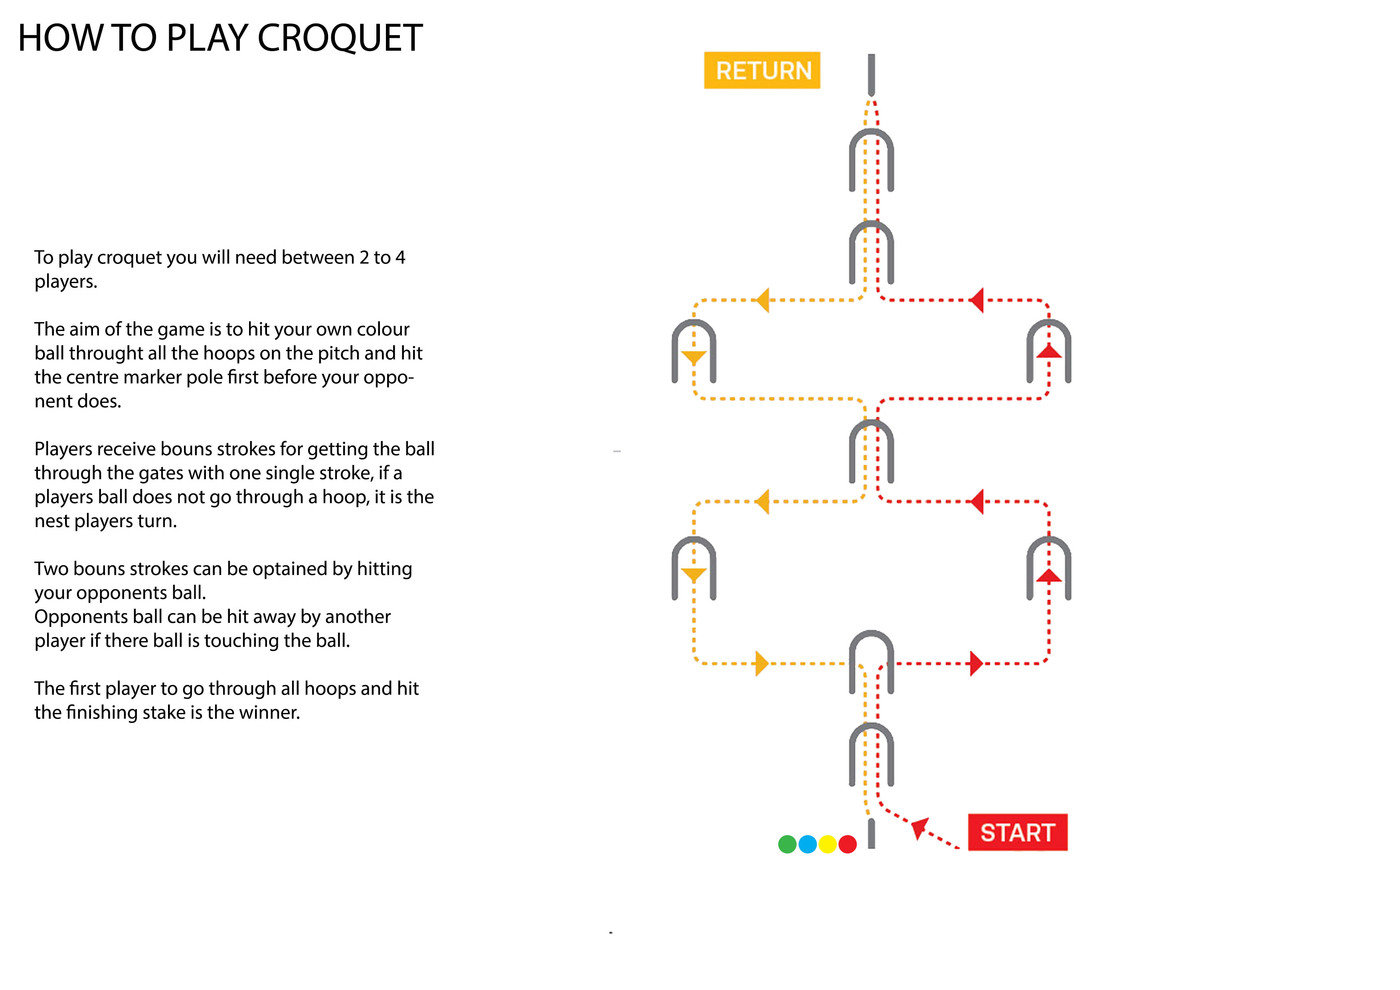 Croquet by kieran cairns at coroflot be the first to comment on this project pooptronica Image collections